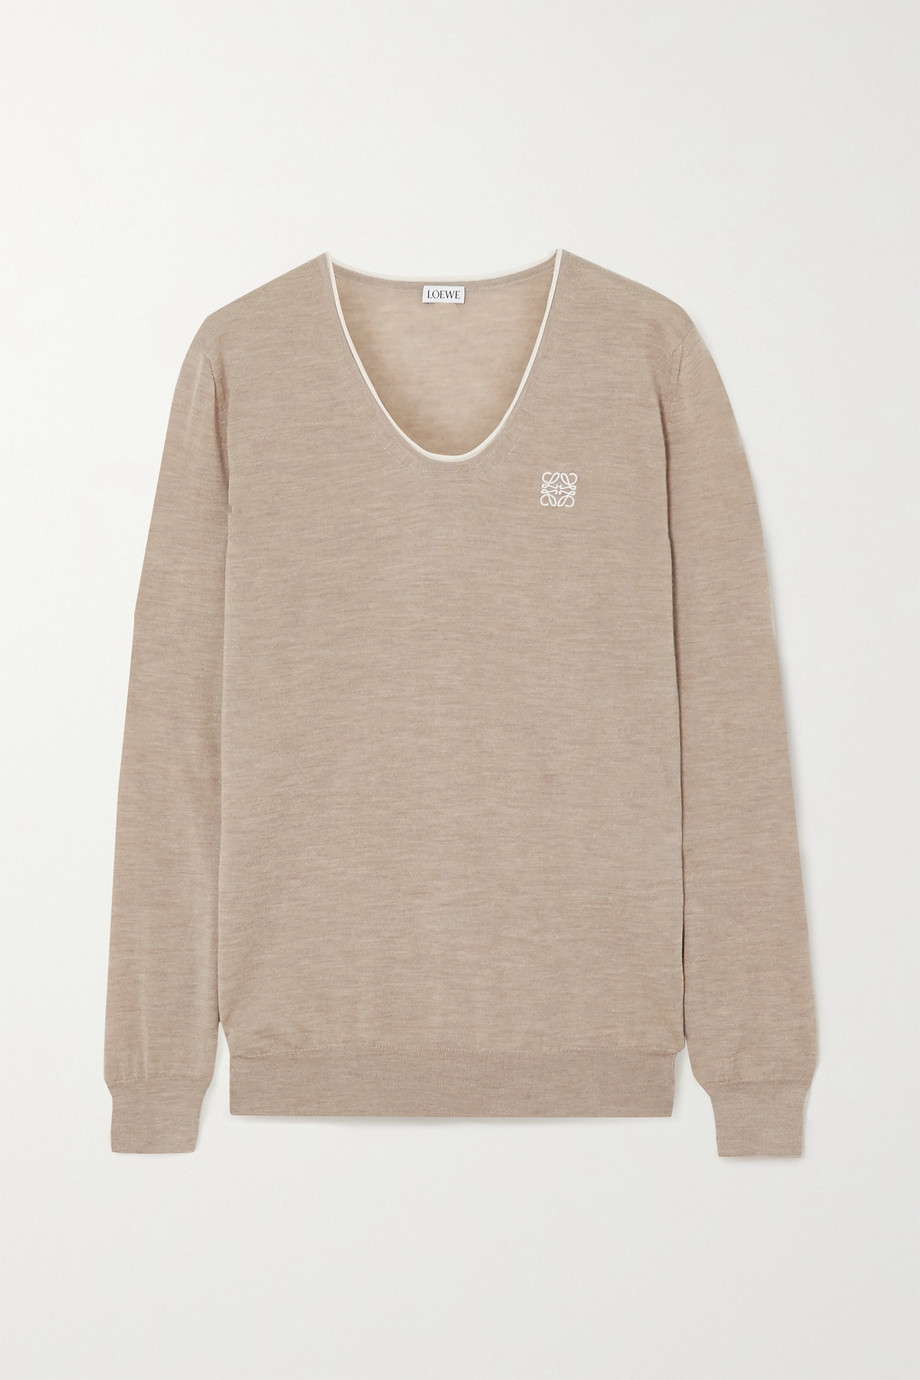 Loewe Embroidered cashmere and cotton-blend sweater